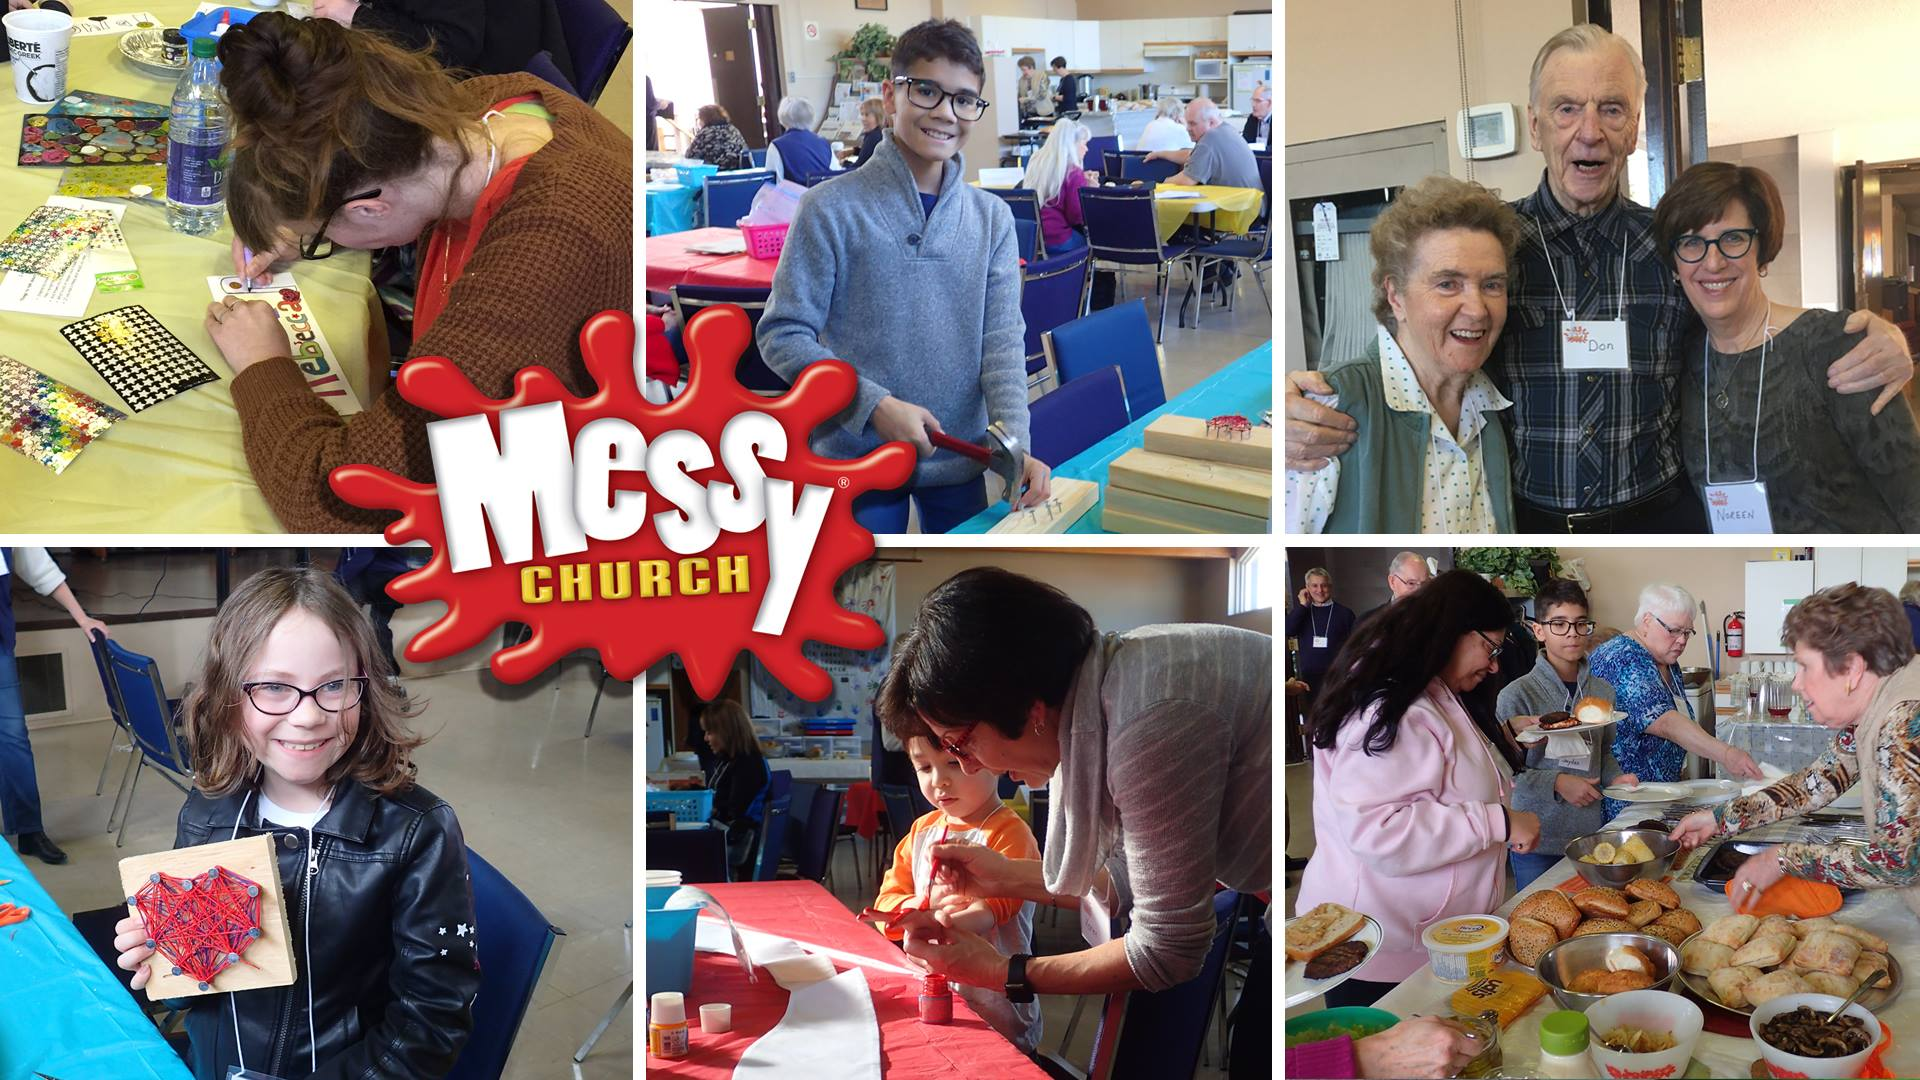 It's Messy Church! This Saturday at 4pm : )